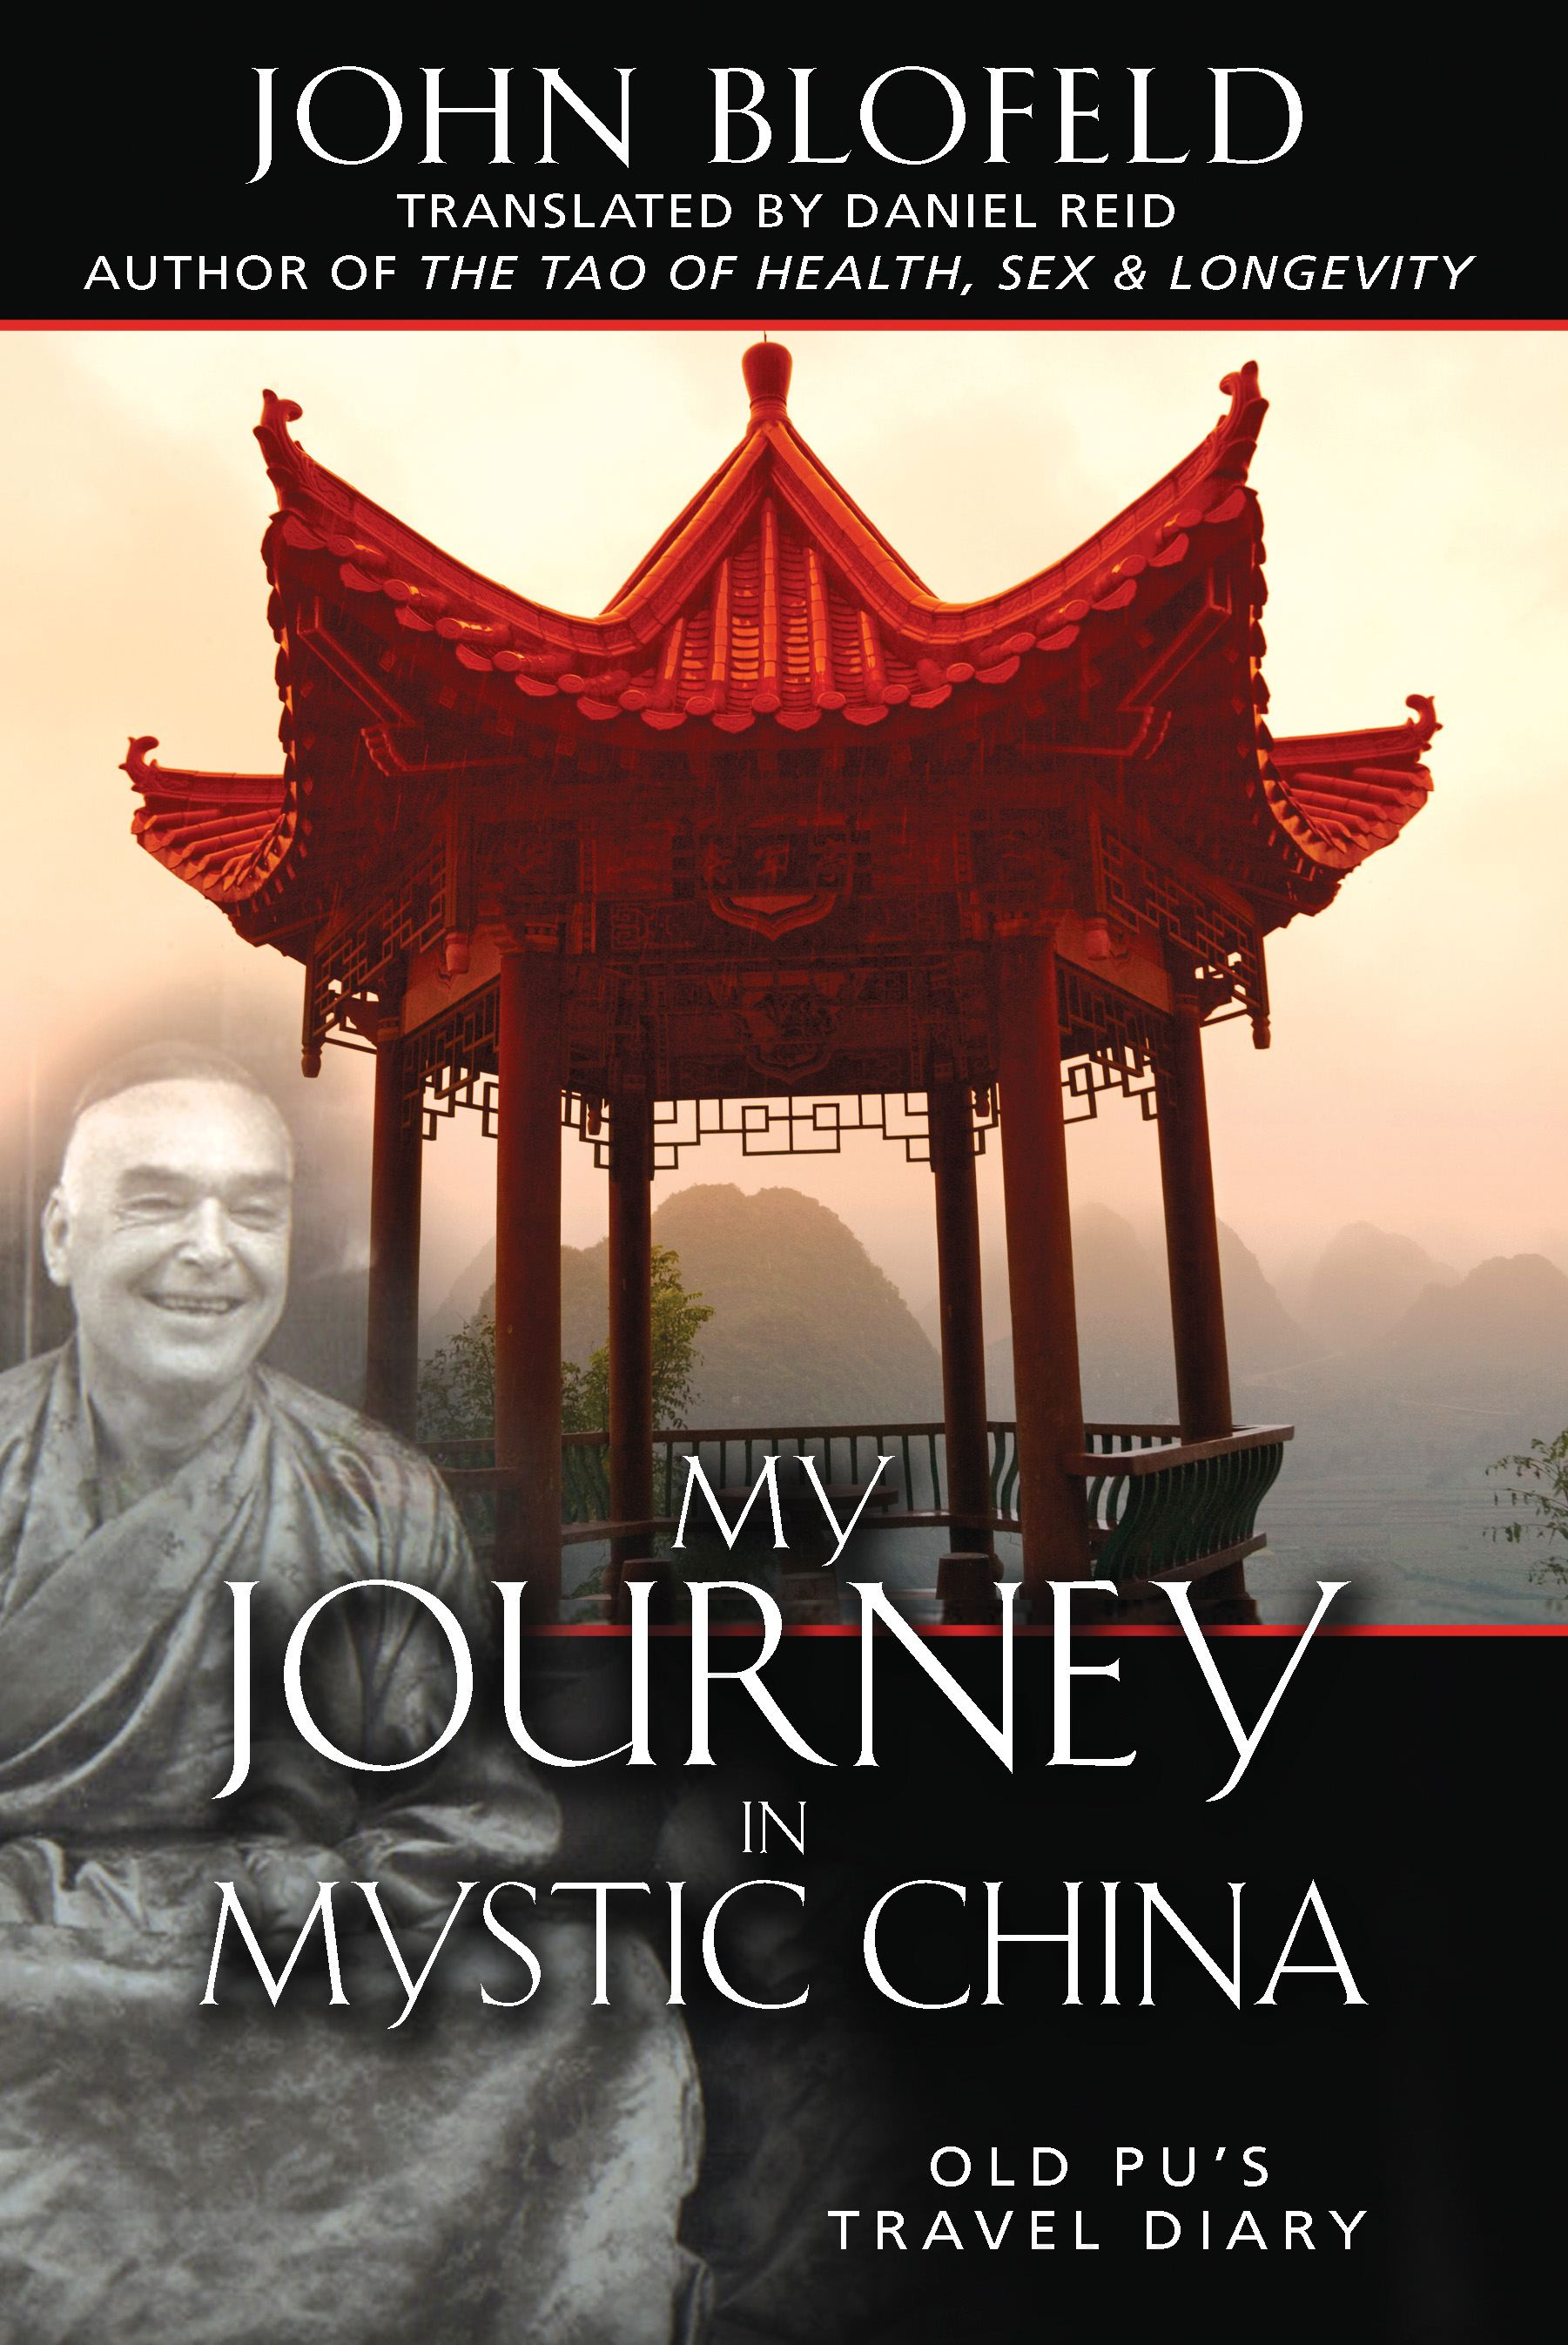 My-journey-in-mystic-china-9781594771576_hr